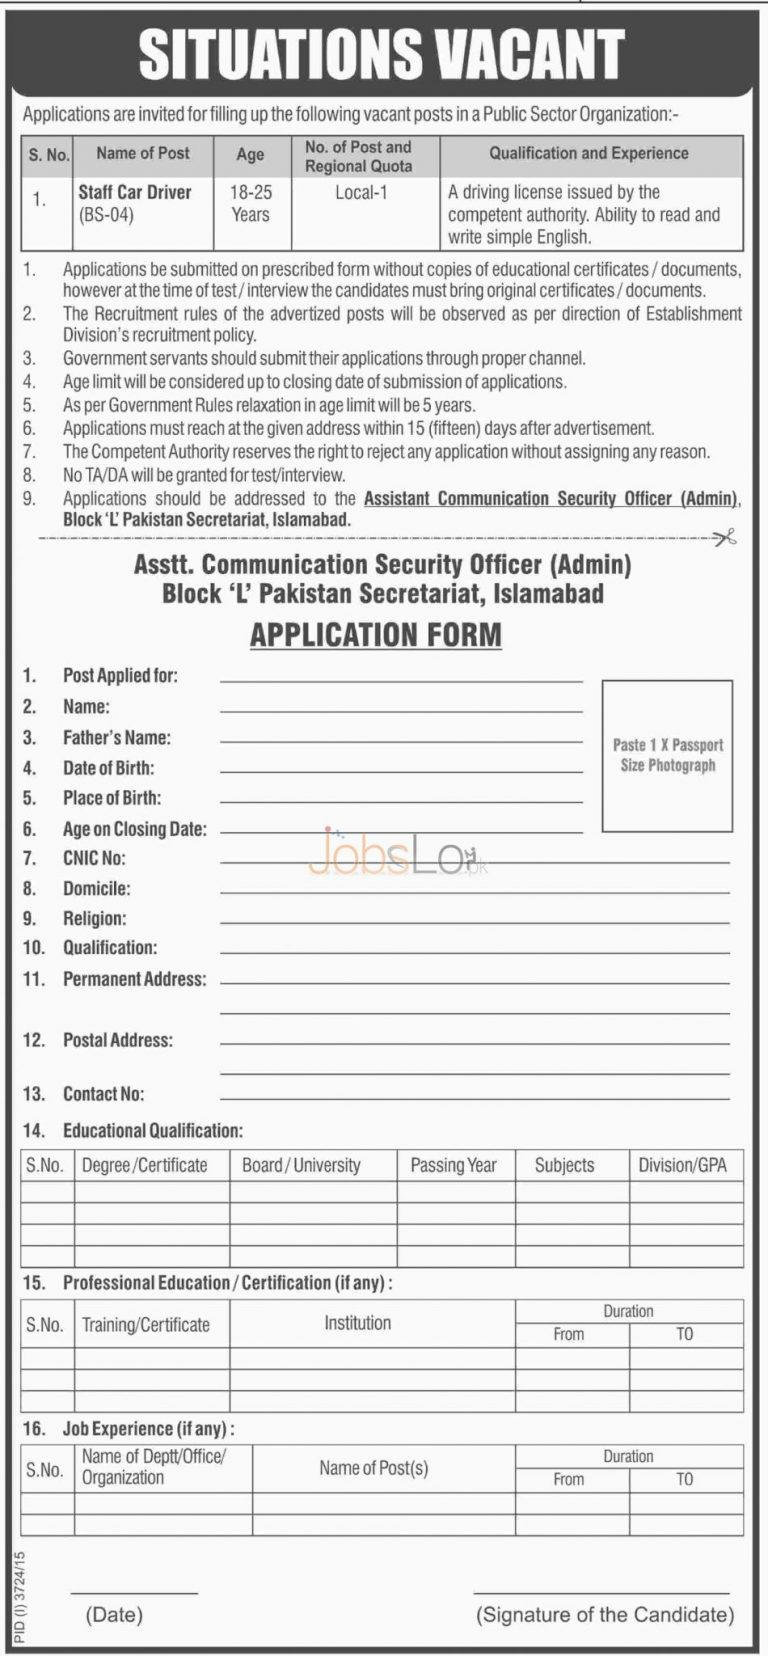 Public Sector Organization Jobs 22 January 2016 for Staff Car Driver